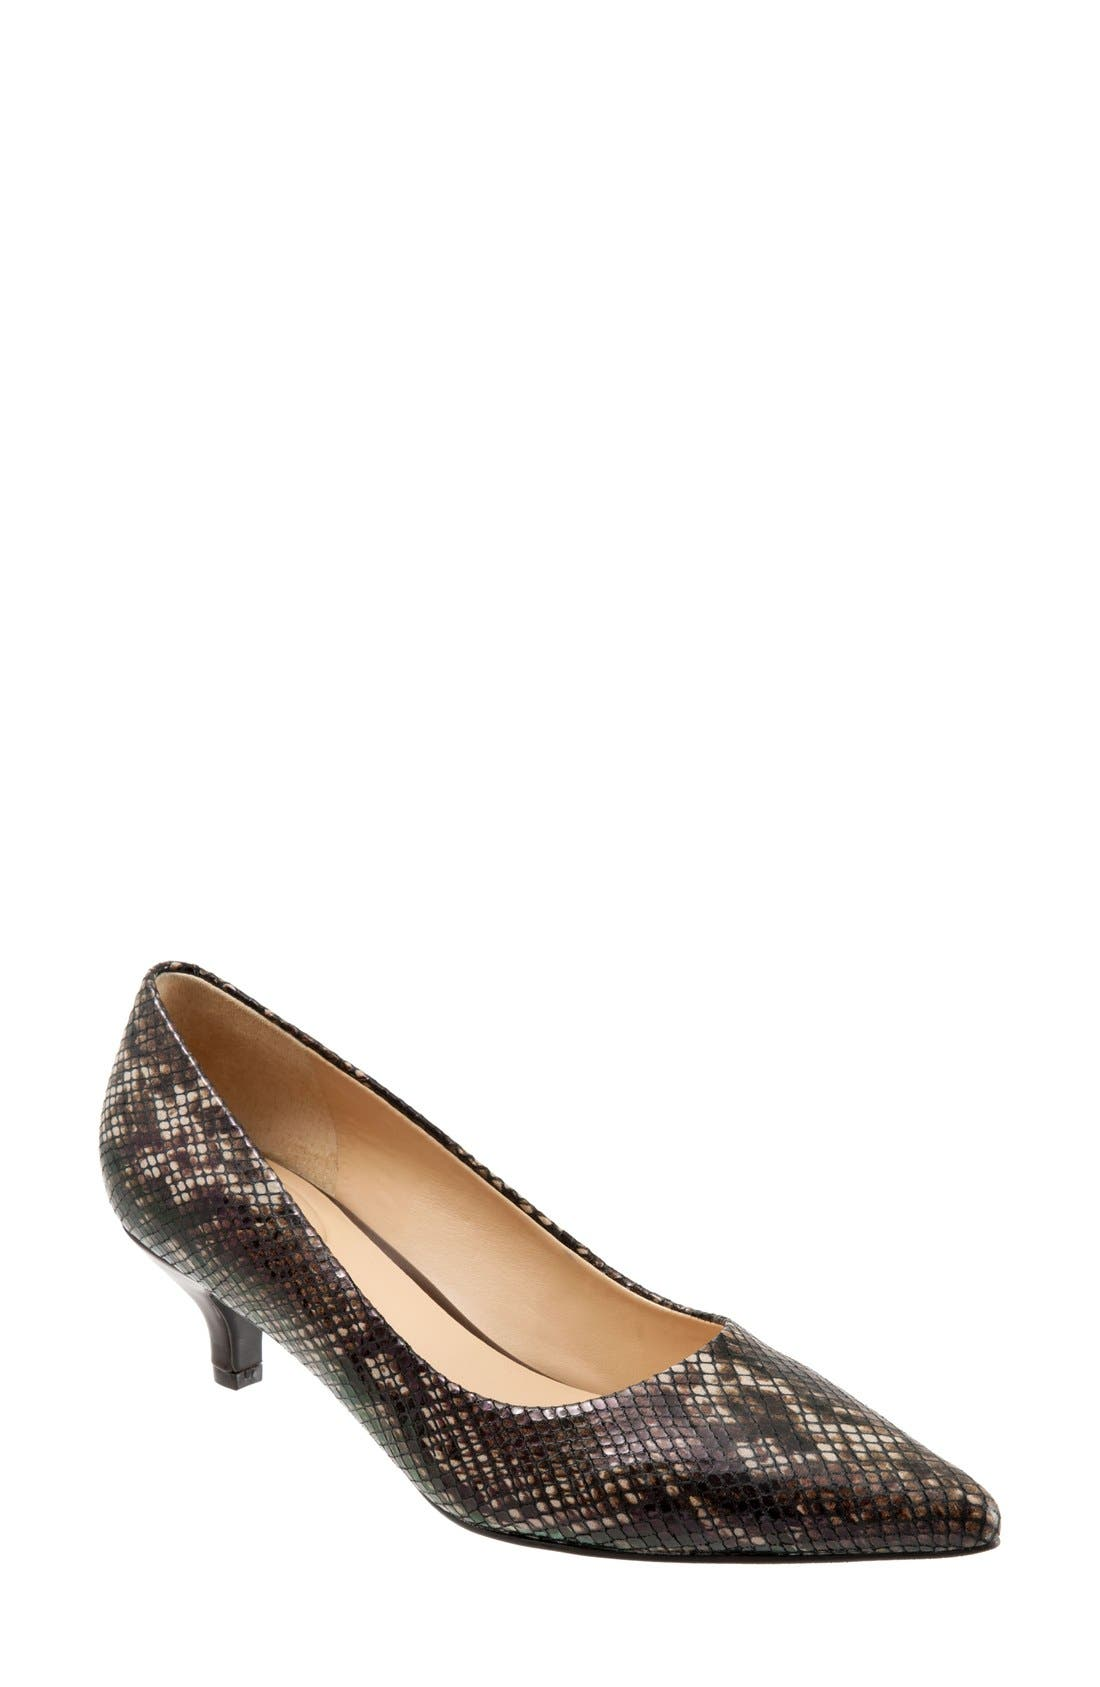 Main Image - Trotters 'Paulina' Leather Pump